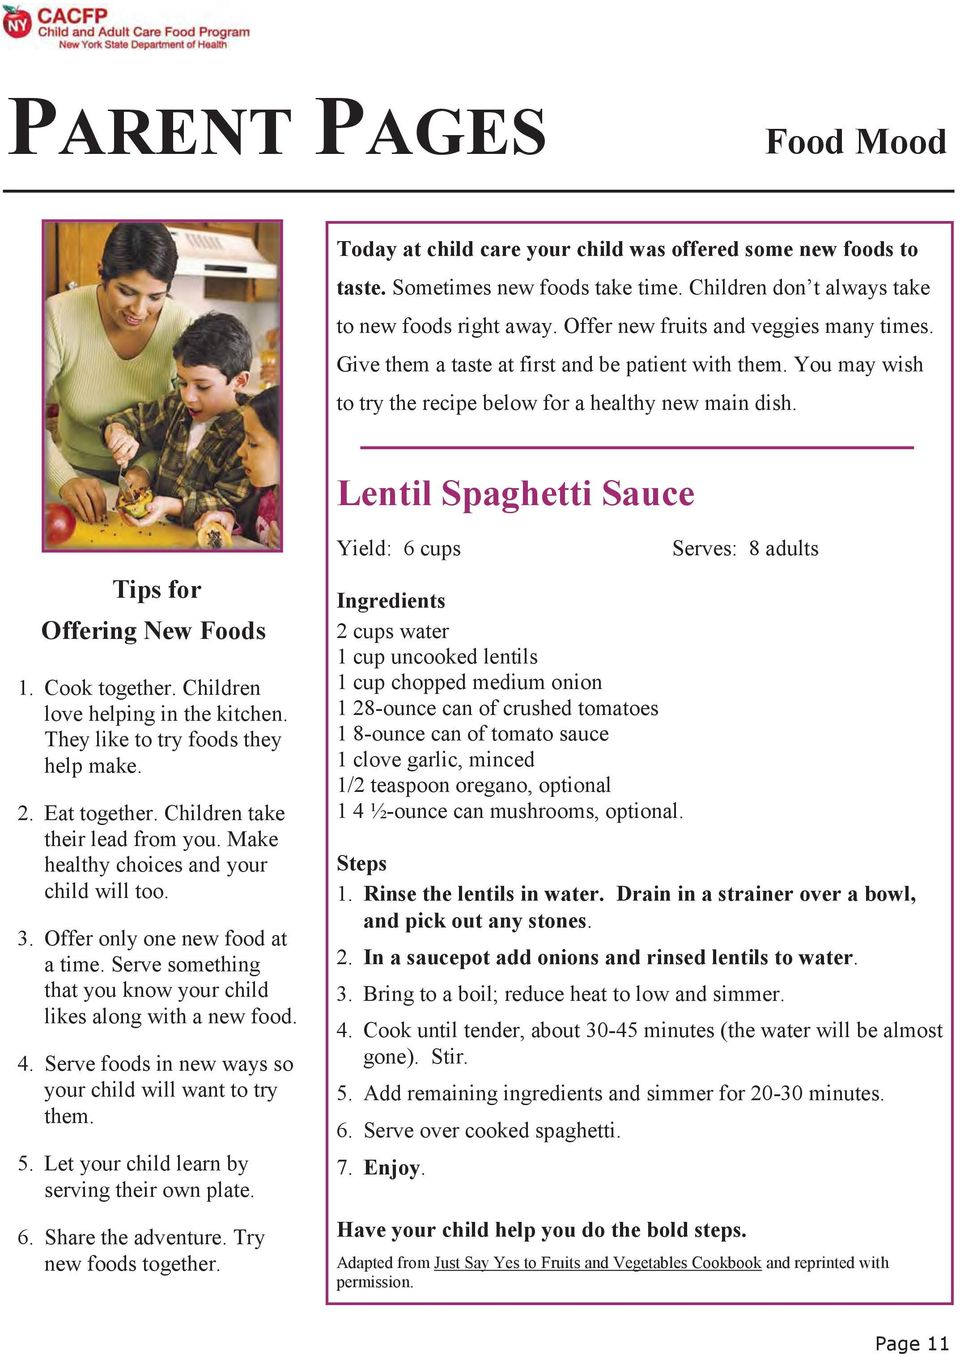 Lentil Spaghetti Sauce Tips for Offering New Foods 1. Cook together. Children love helping in the kitchen. They like to try foods they help make. 2. Eat together. Children take their lead from you.